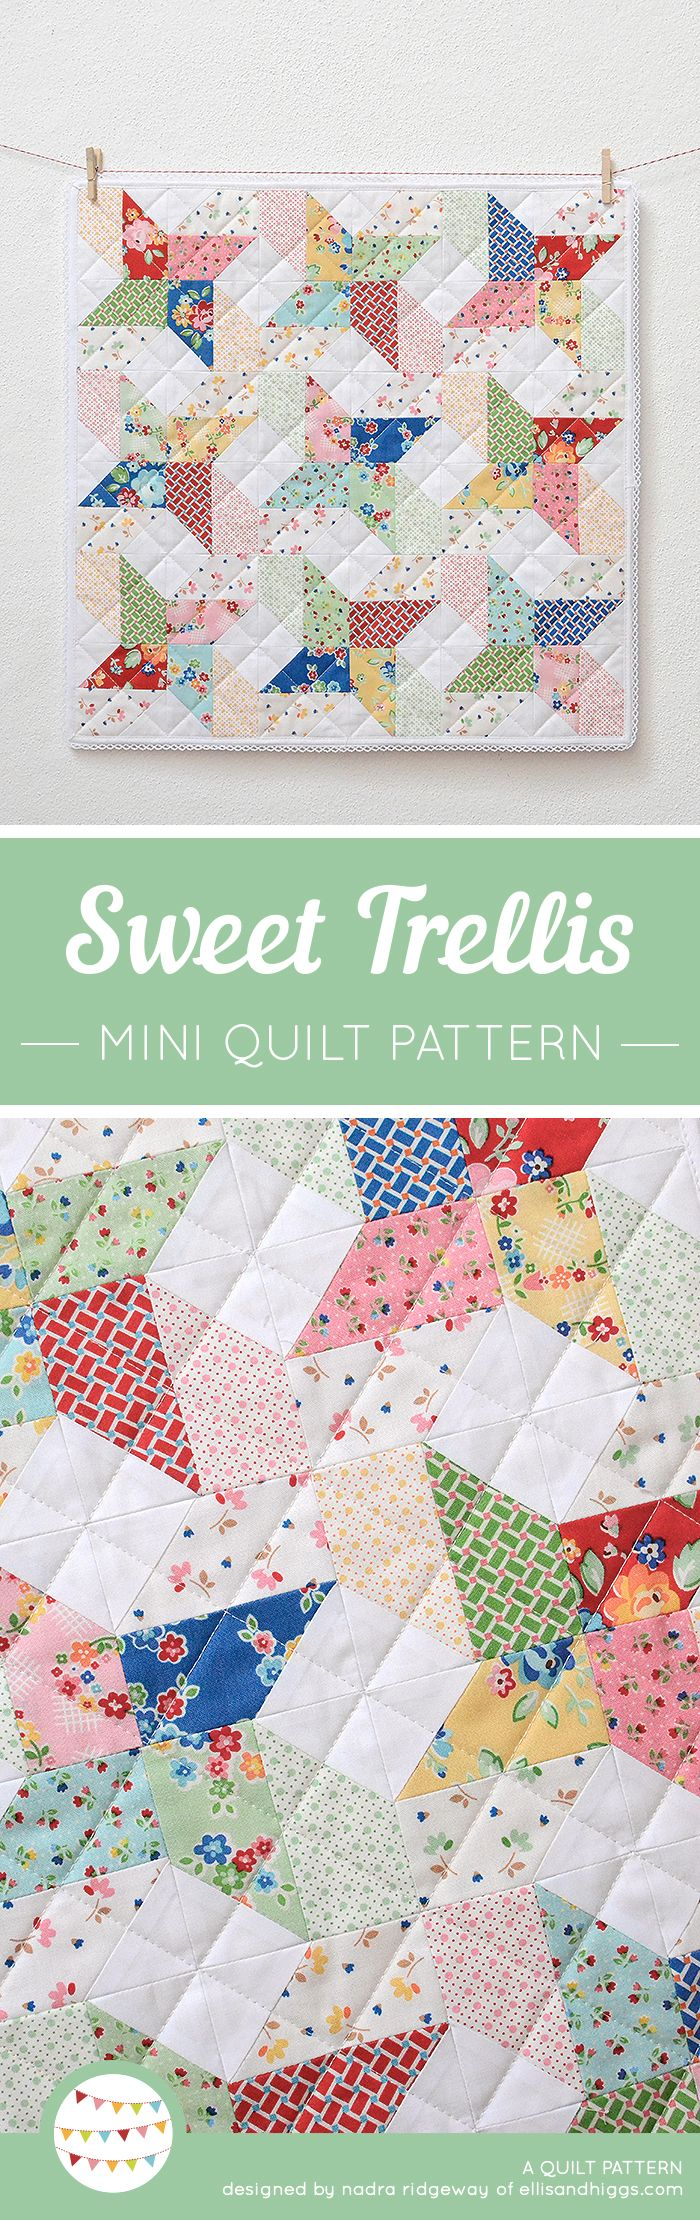 Sweet Trellis mini quilt pattern by Nadra Ridgeway of ellis & higgs. Patchwork pattern, beginner quilt pattern, fast and easy quilt pattern, star quilt block, pillow cushion. Patchwork Anleitung, Anfänger, Einsteiger, Nähanleitung, Patchworkdecke, Kissen, Wandbehand, Geschenke, DIY